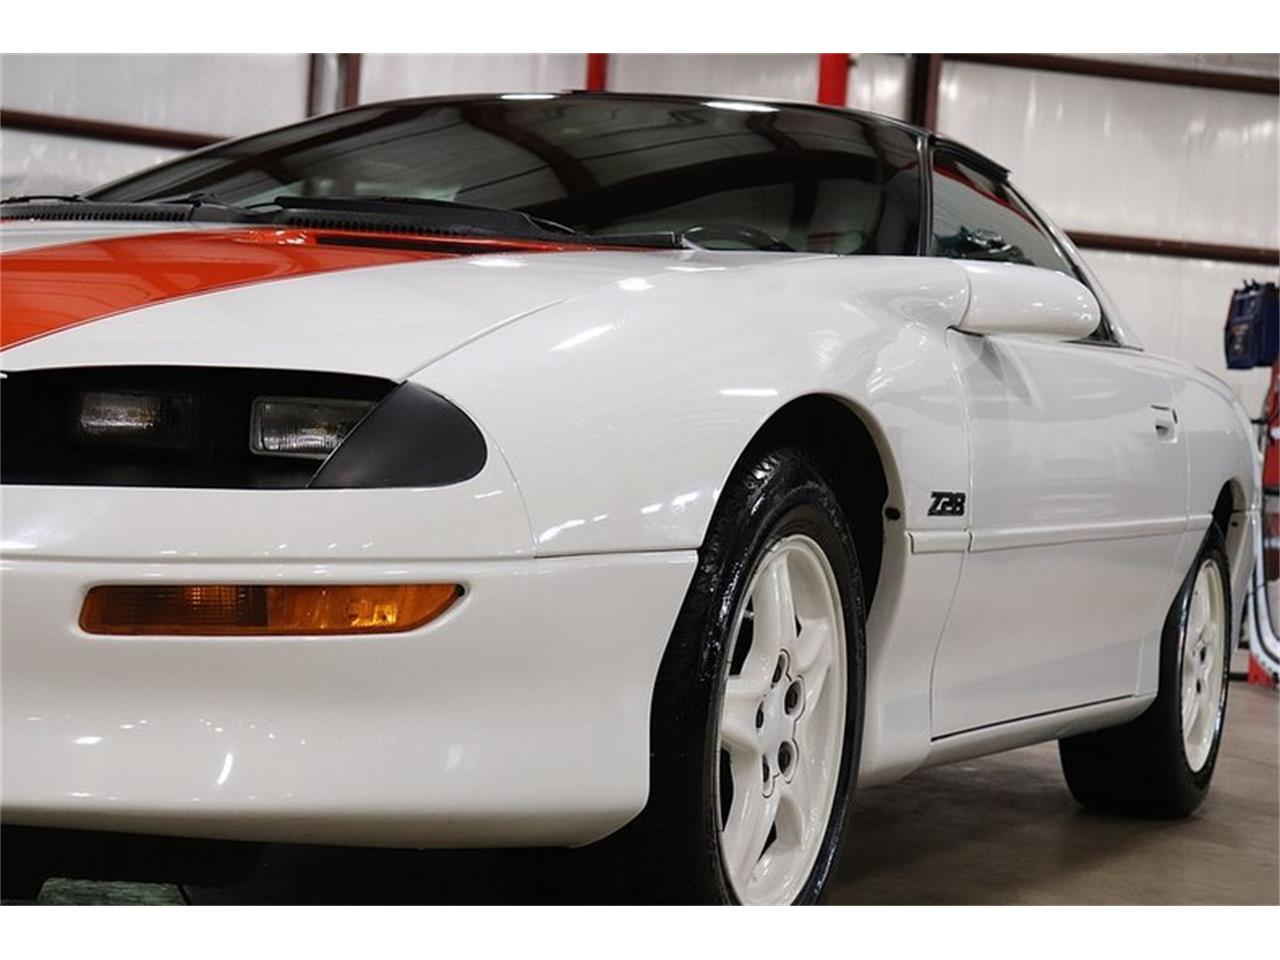 1997 Chevrolet Camaro Z28 for sale in Kentwood, MI – photo 35